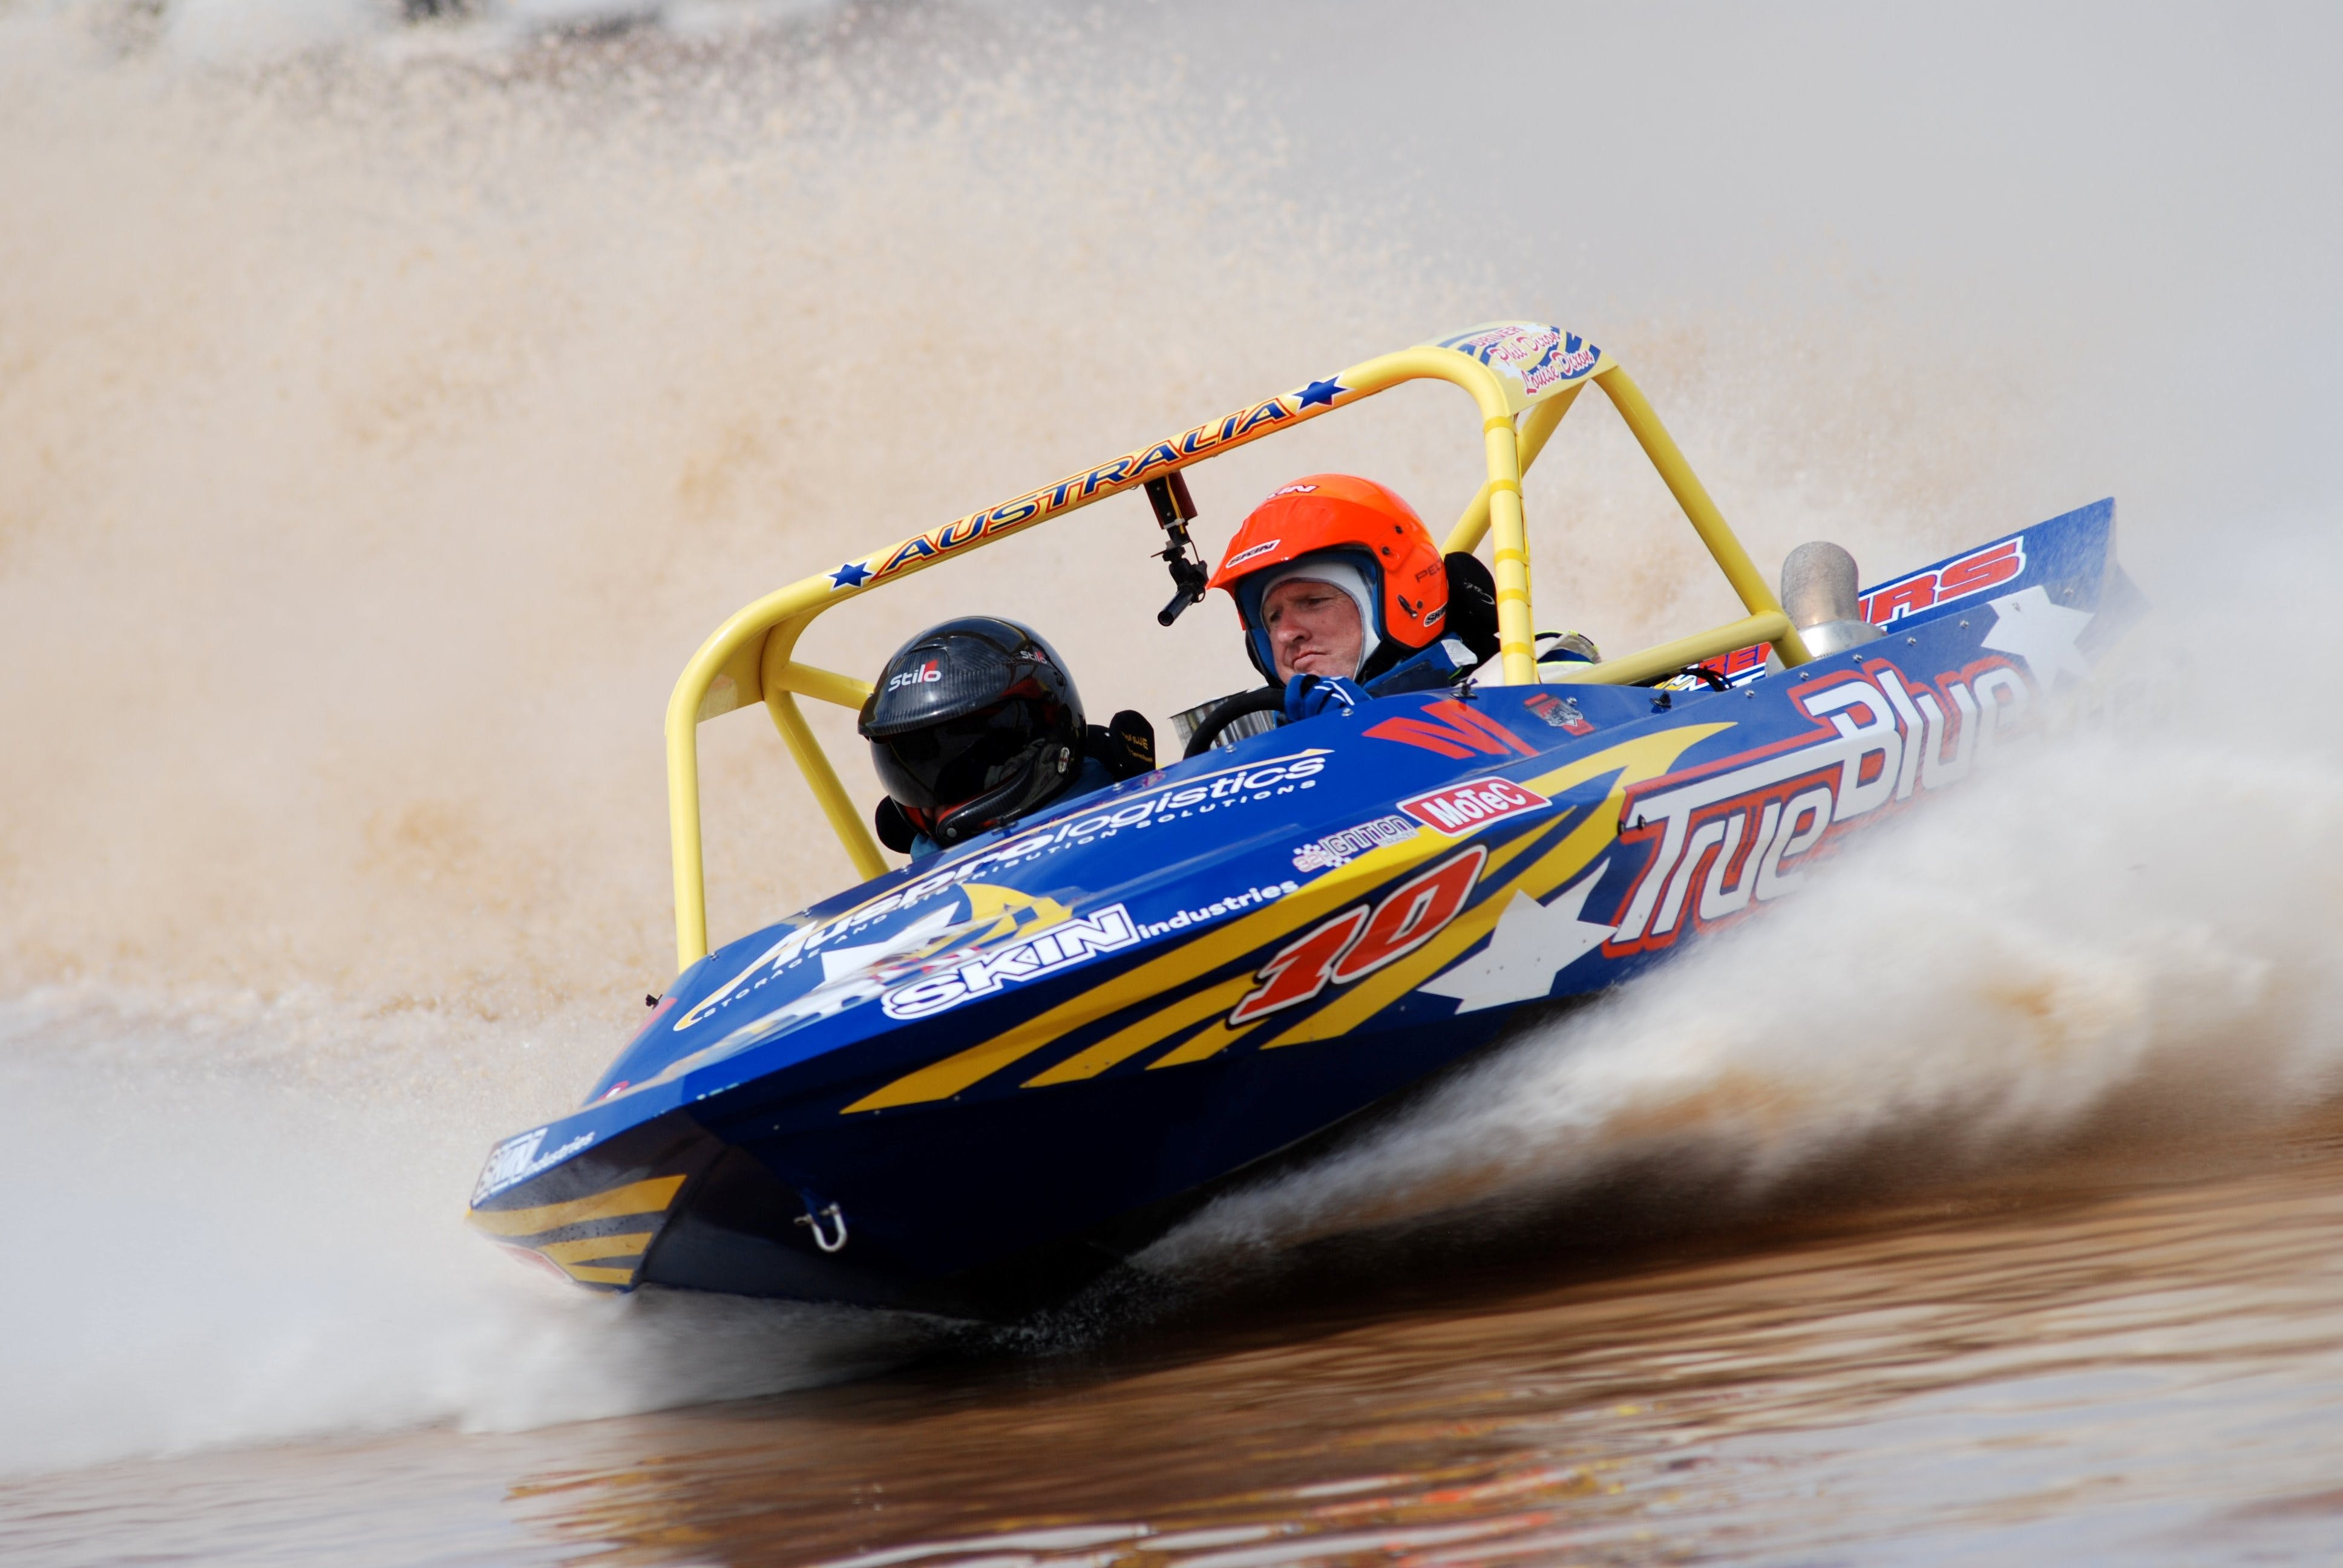 V8 Superboats - Accommodation in Surfers Paradise